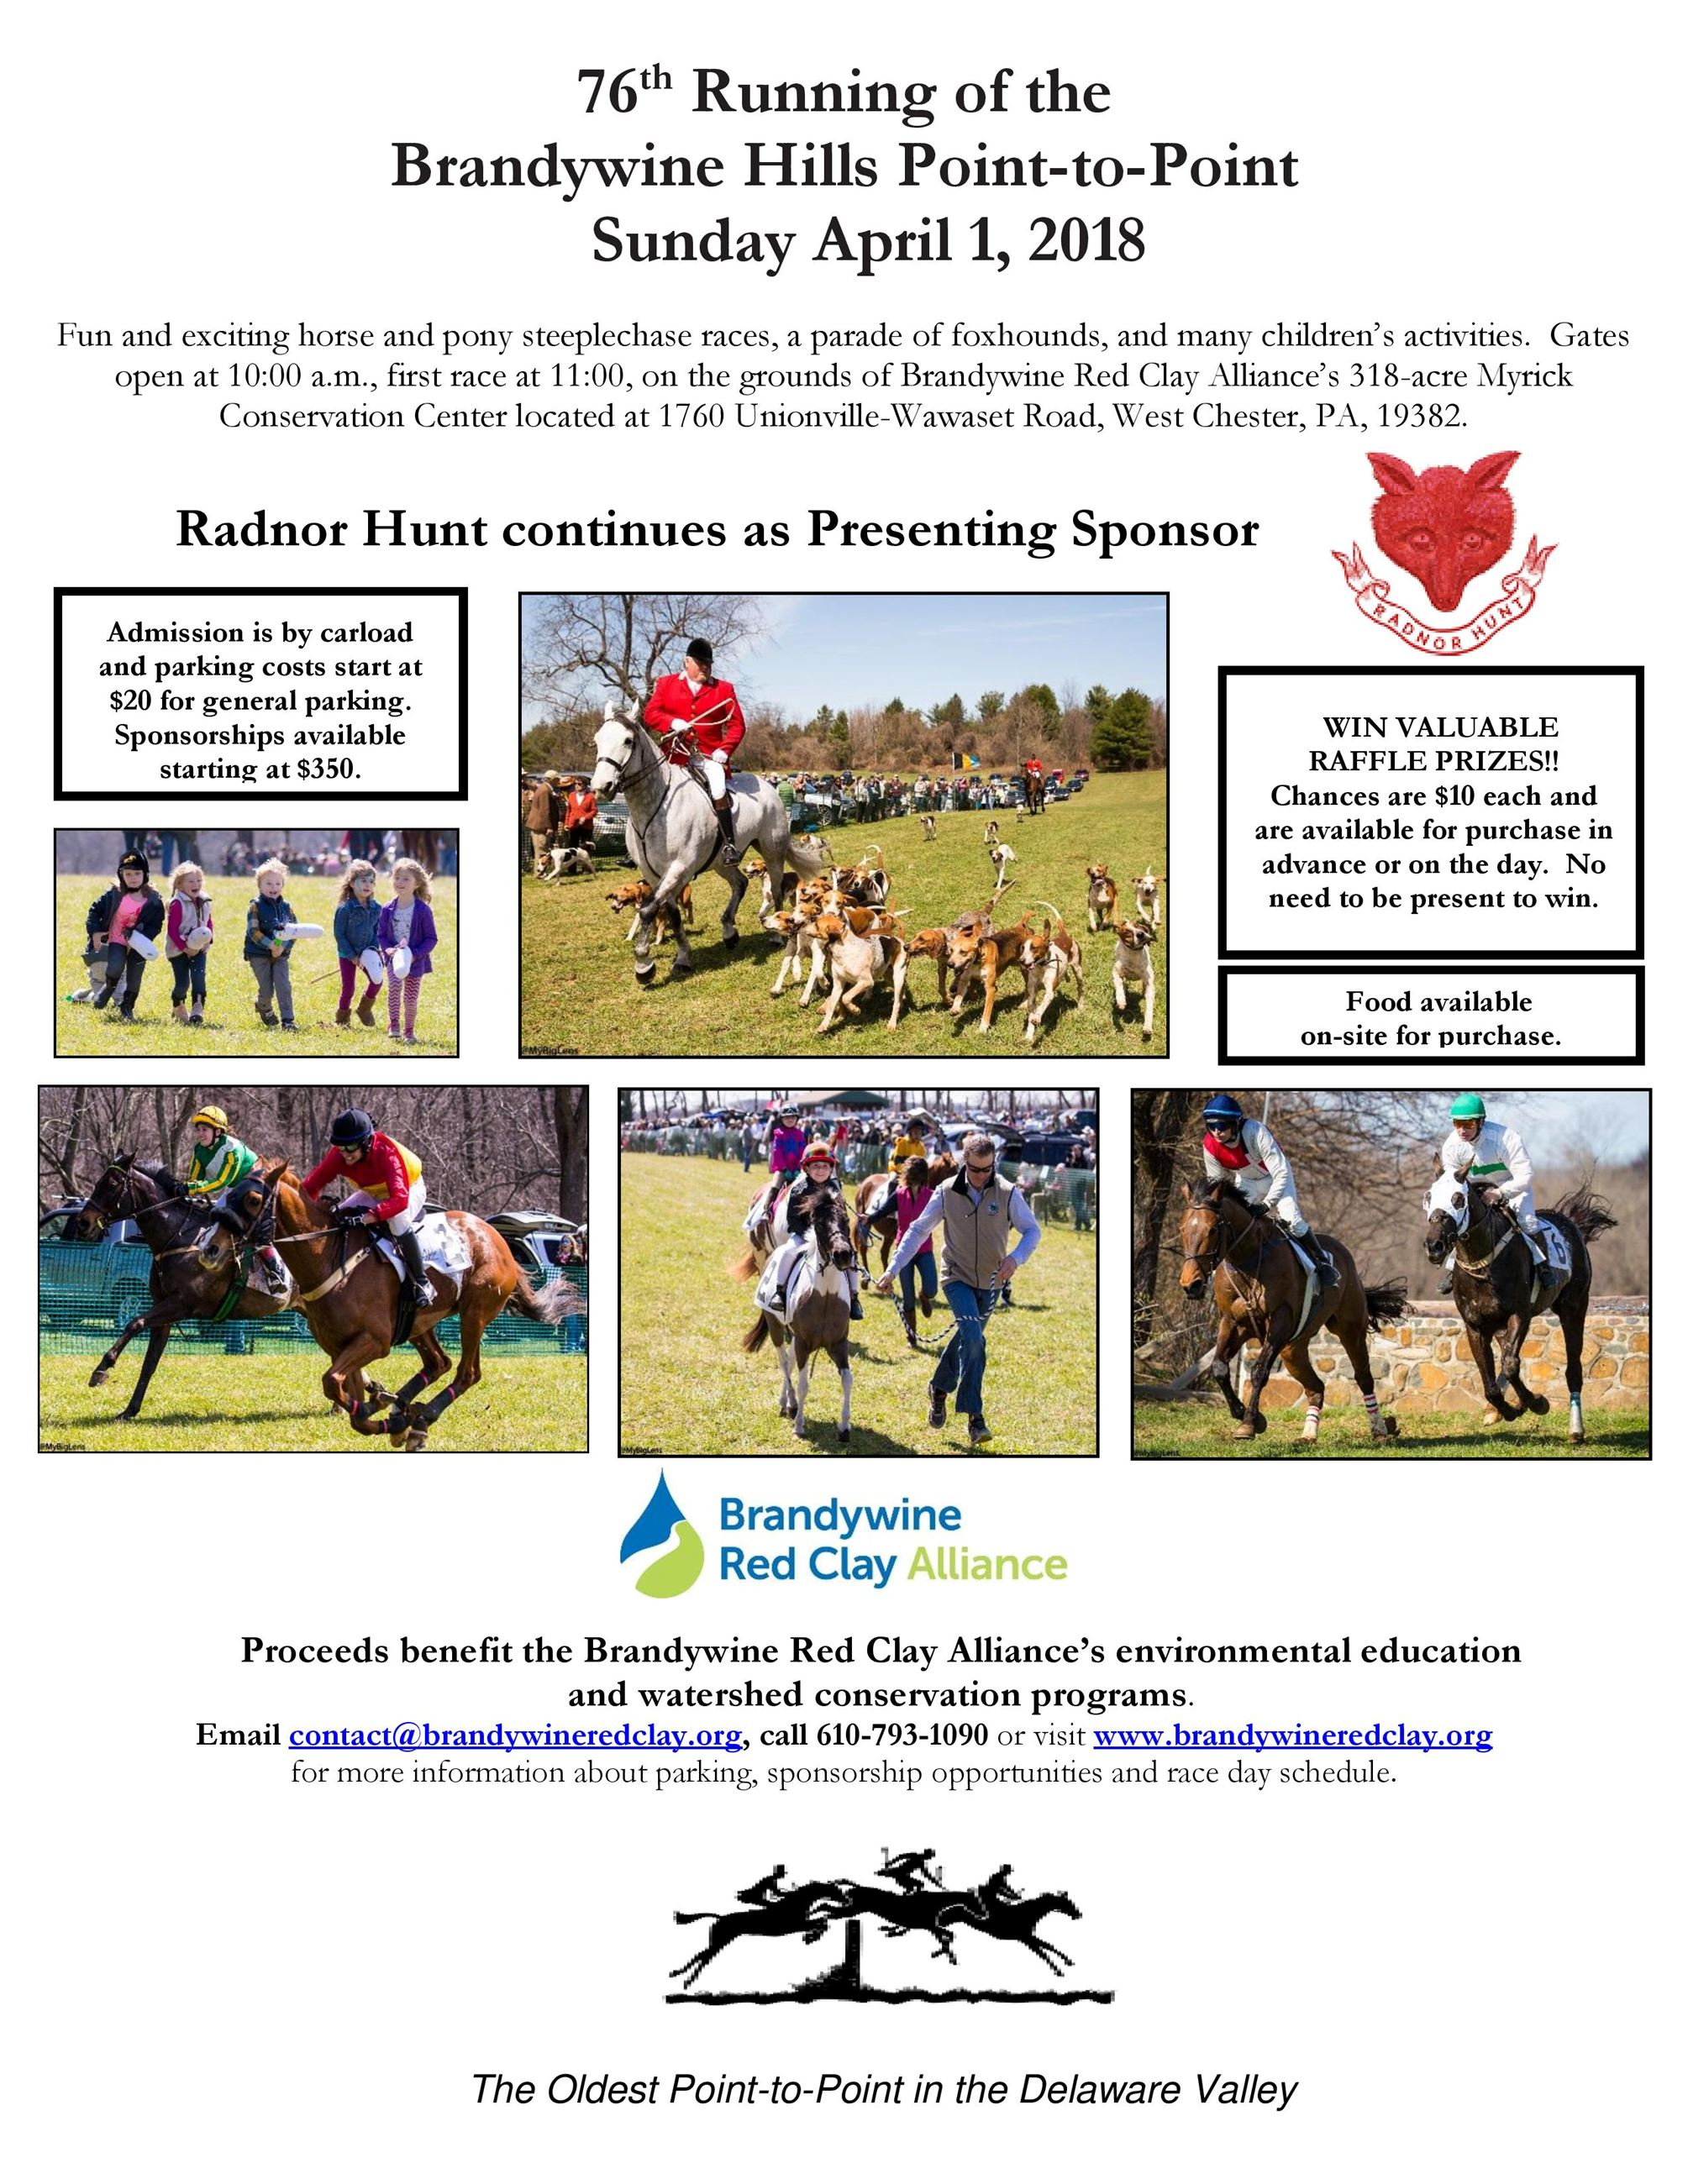 Brandywine Hills Point-to-Point